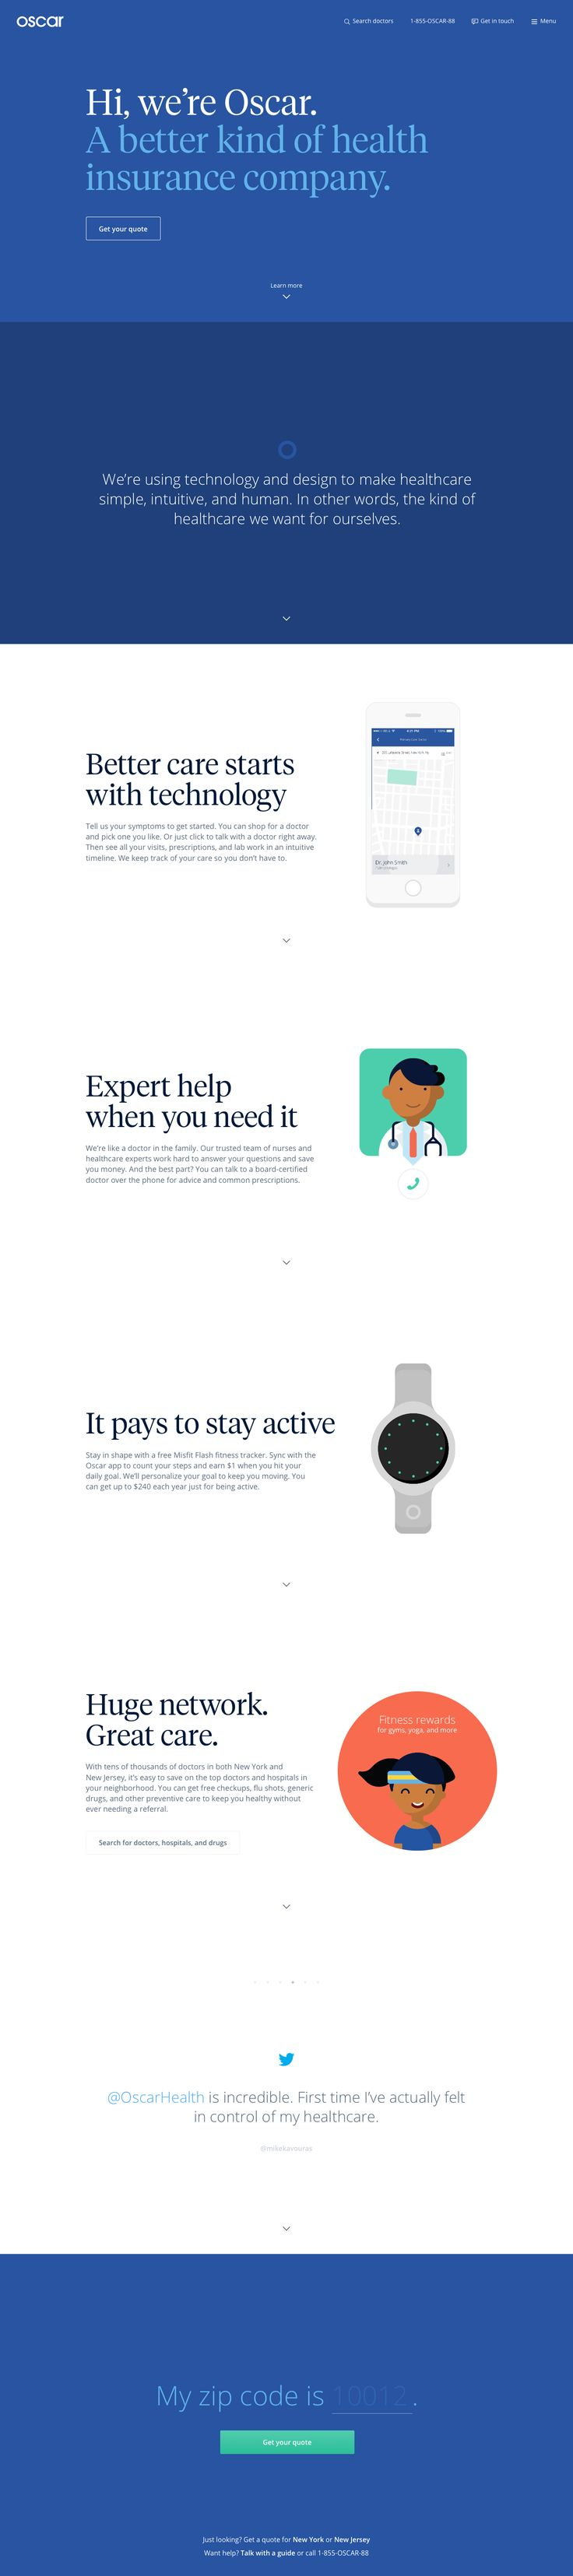 Health Insurance Quotes Endearing 58 Best Oscar Health Insurance Images On Pinterest  Health